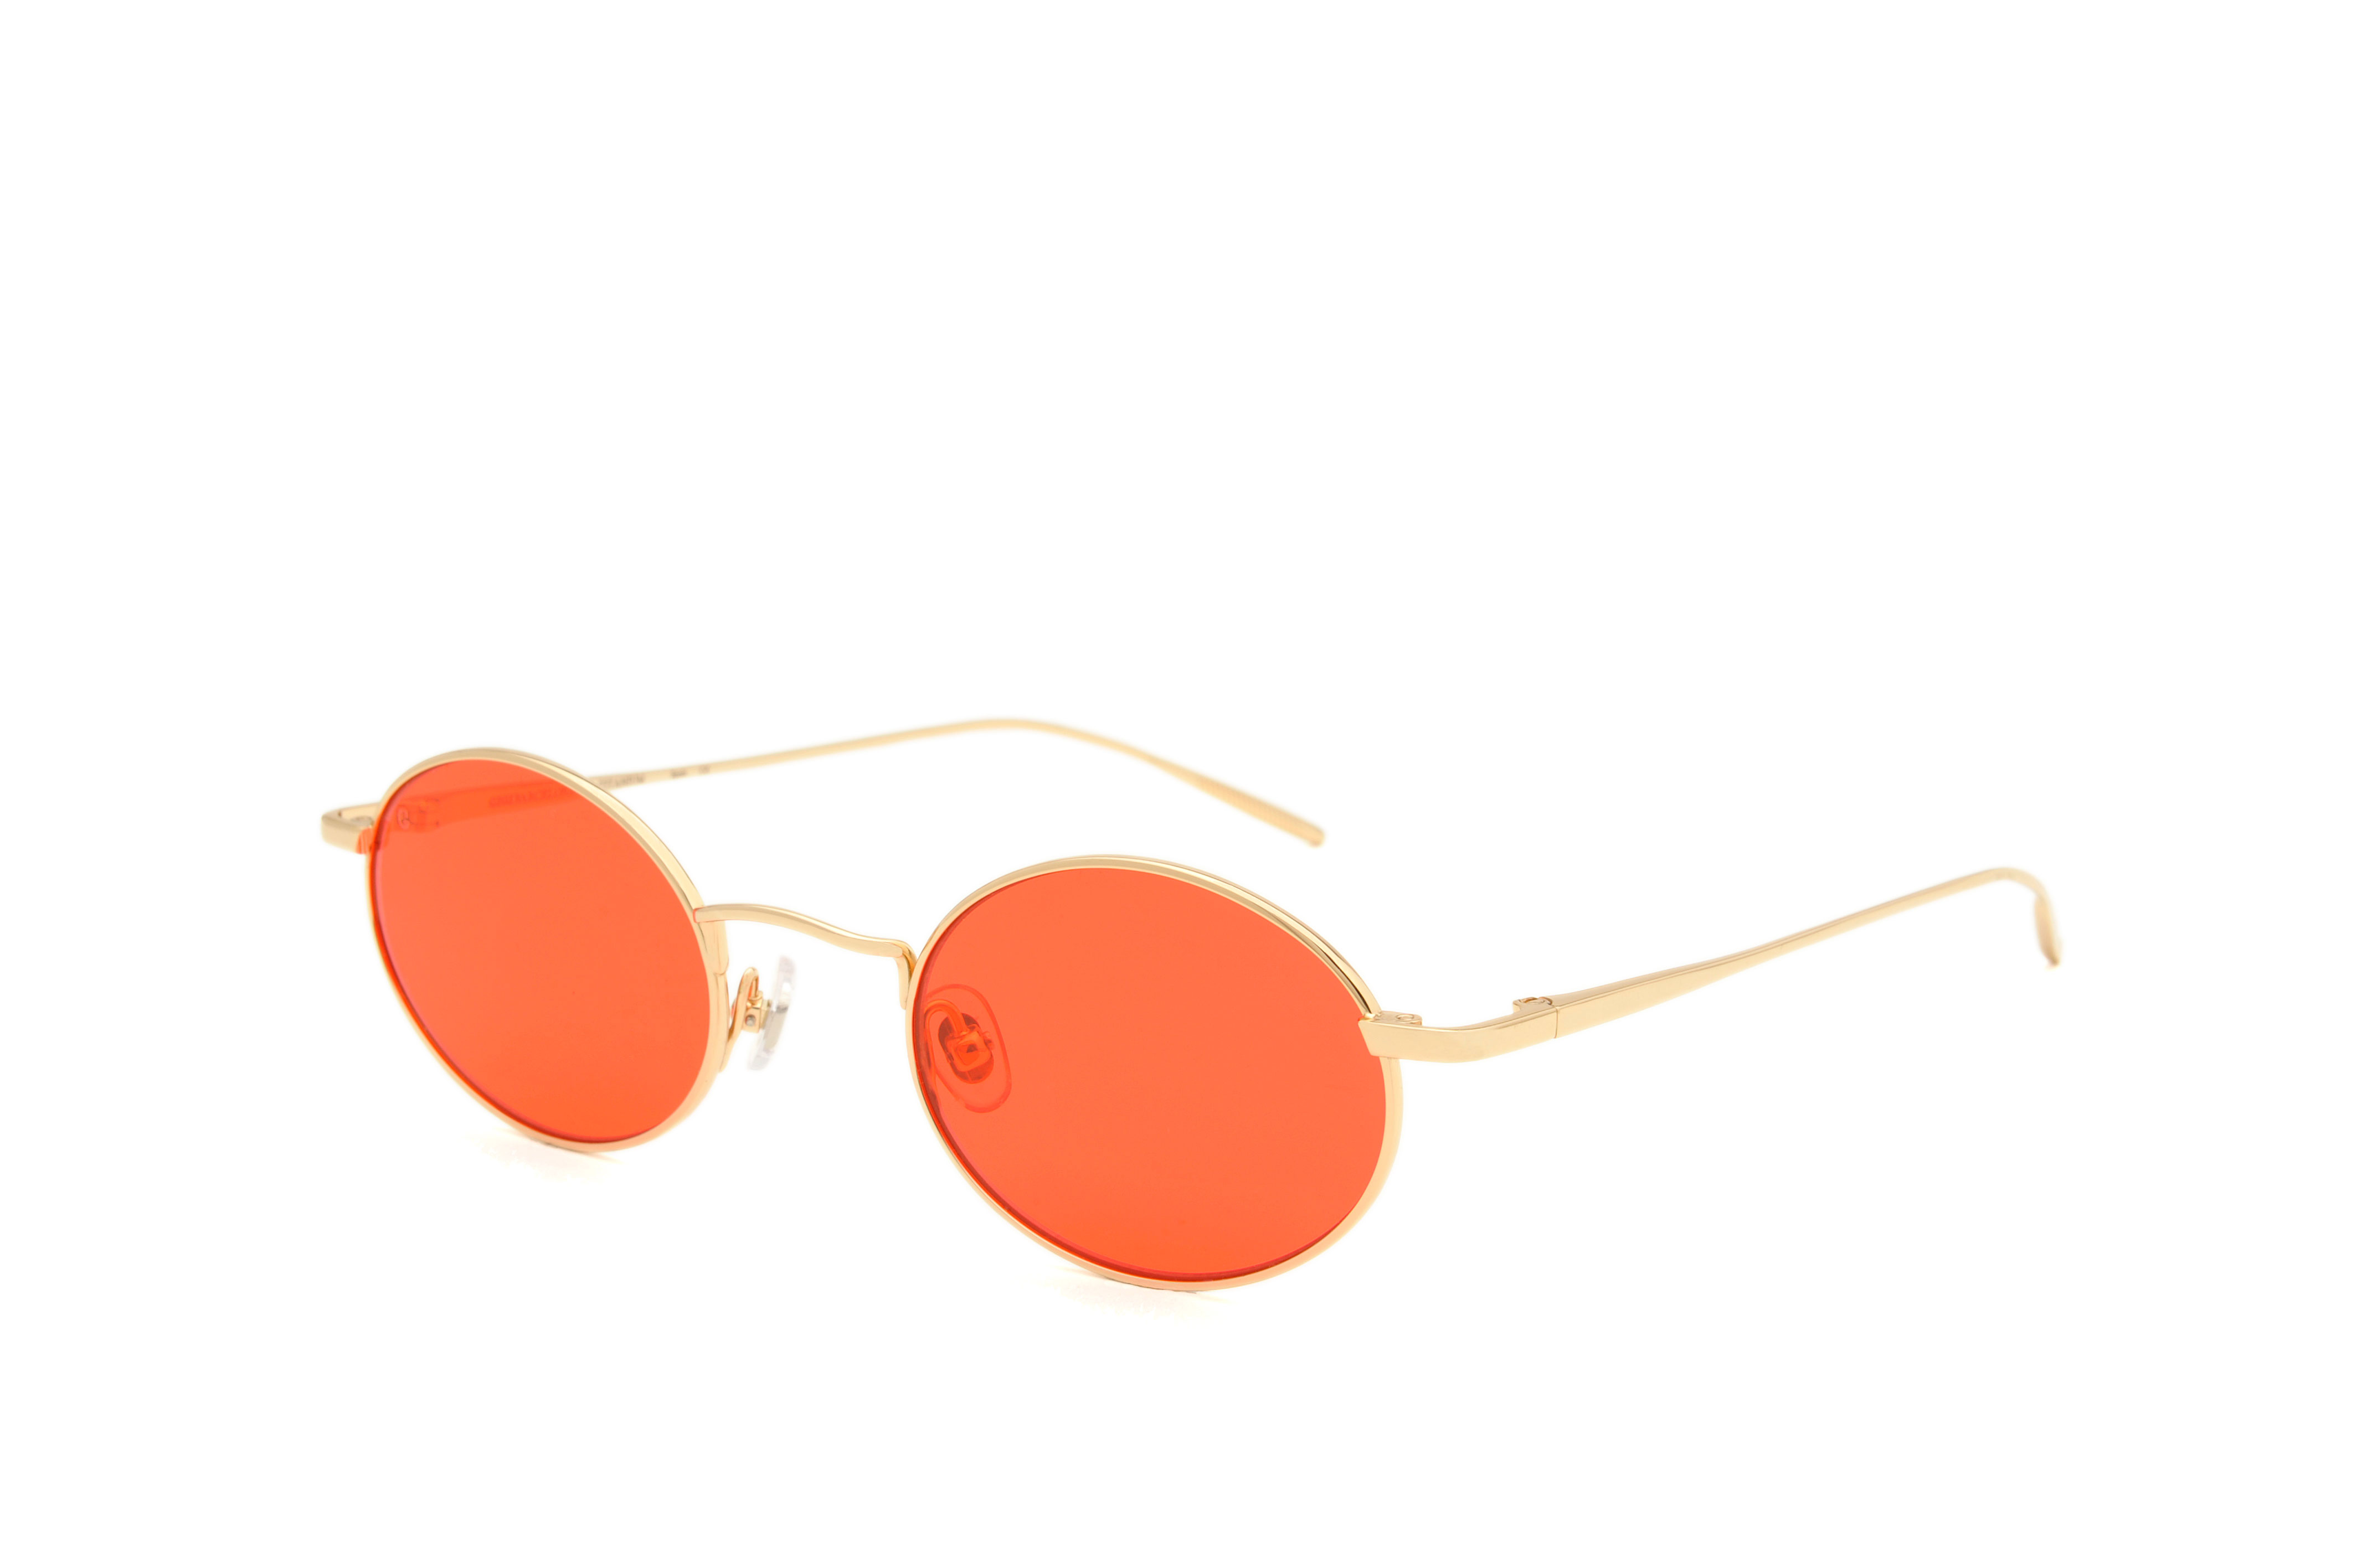 Roma metal rounded gold sunglasses by GIGI Studios